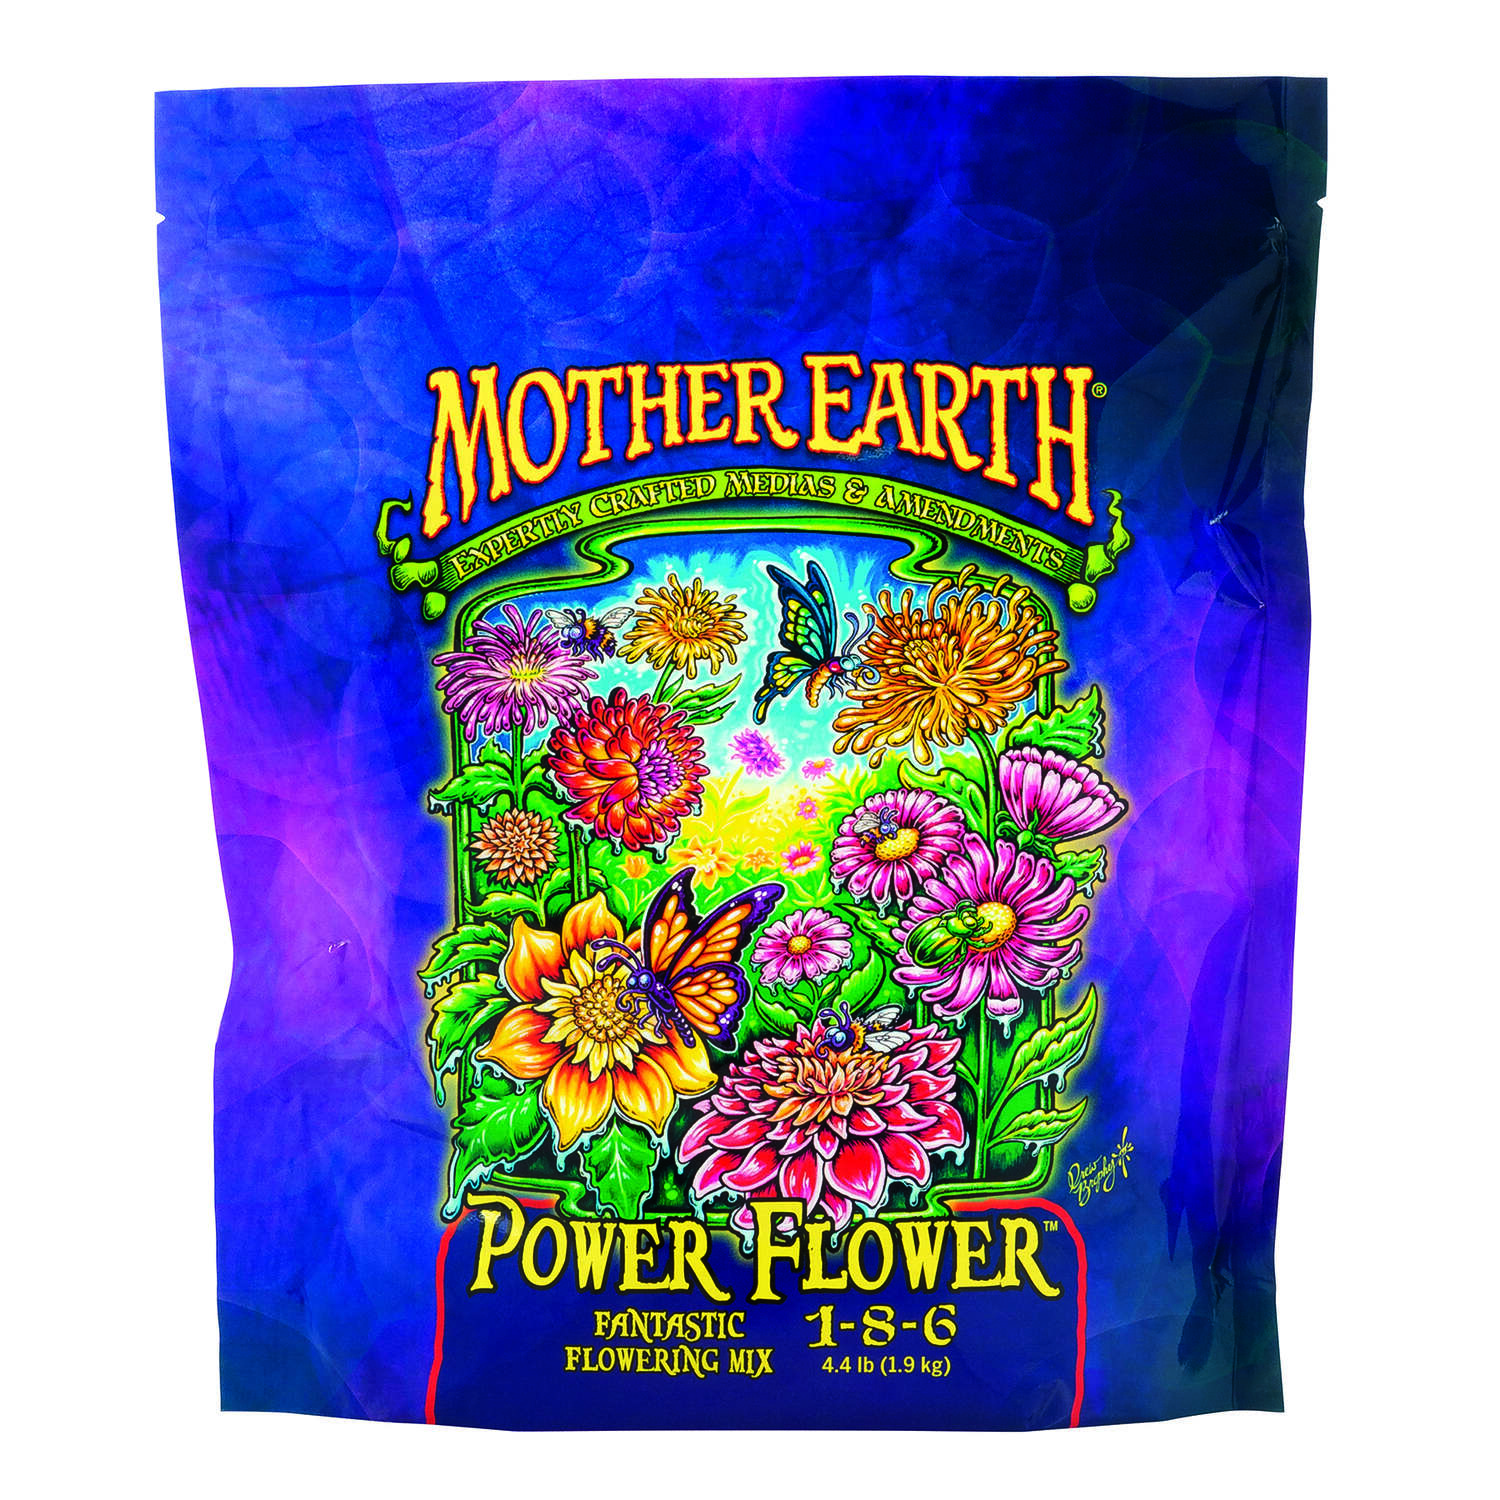 Mother Earth  Power Flower Fantastic Flowering Mix 1-8-6  Hydroponic Plant Supplement  4.4 lb.